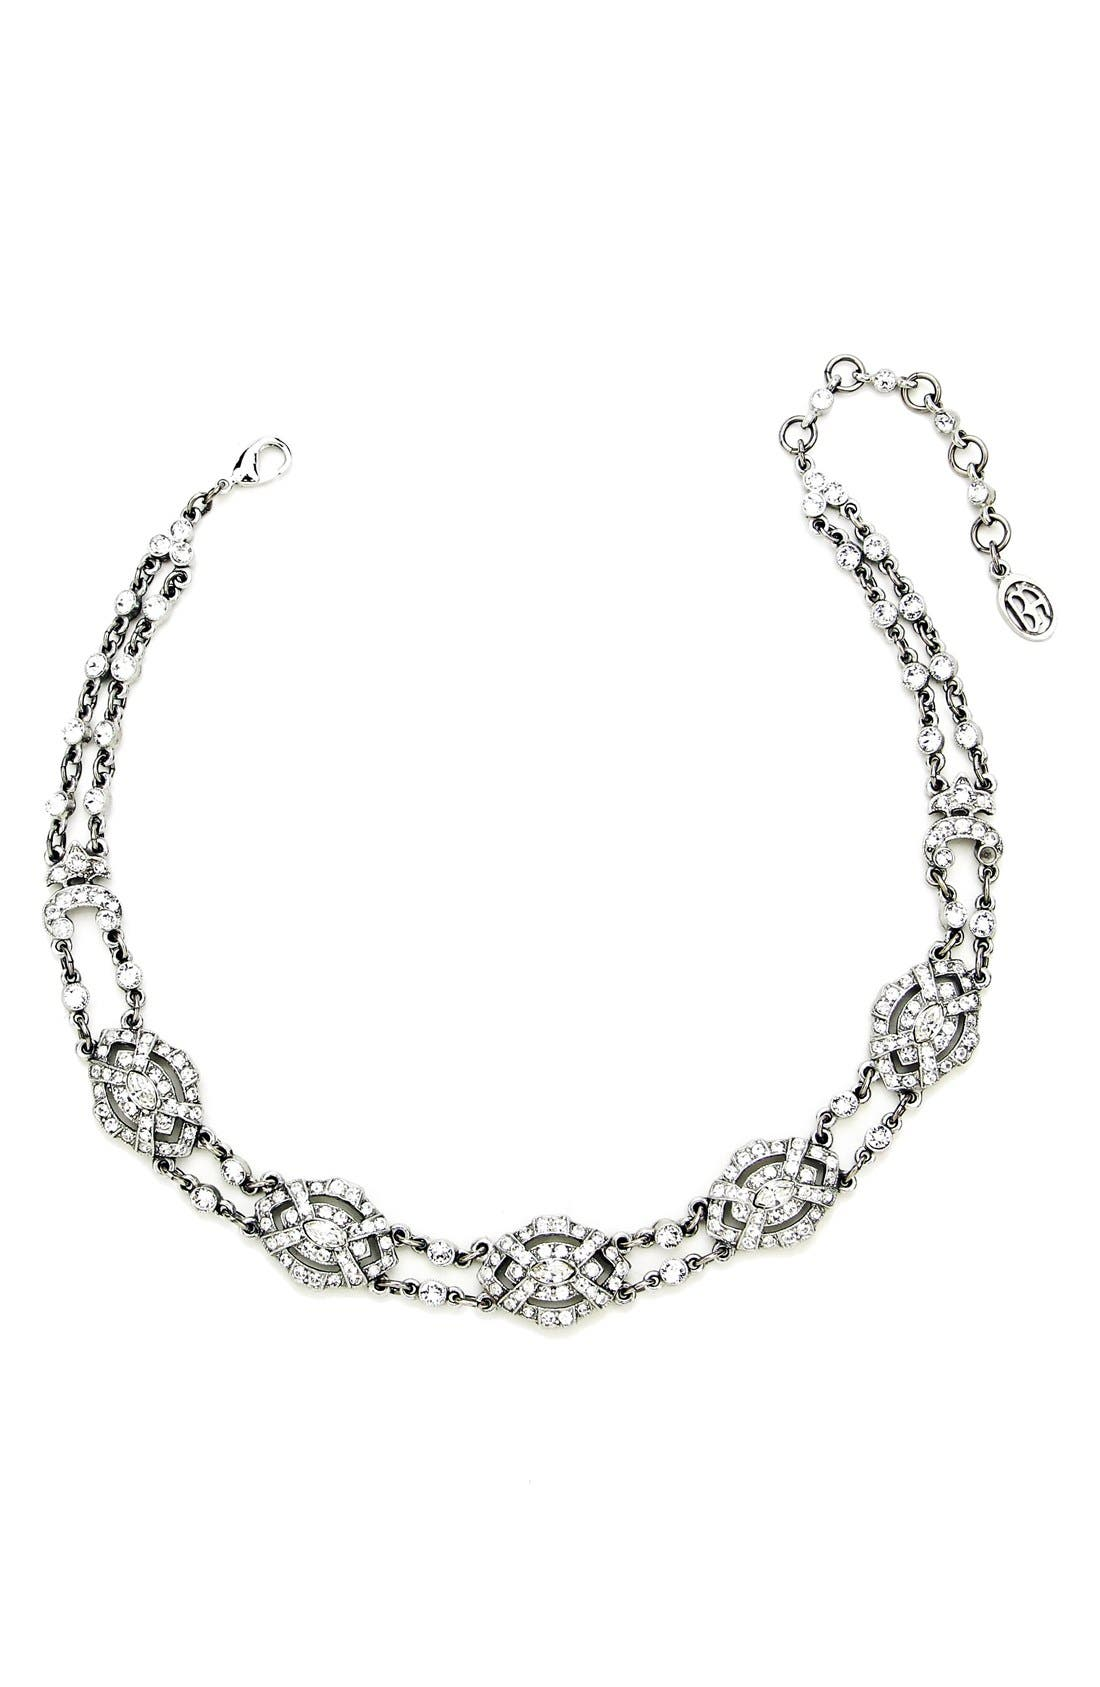 'Deco' Crystal Choker,                             Main thumbnail 1, color,                             040